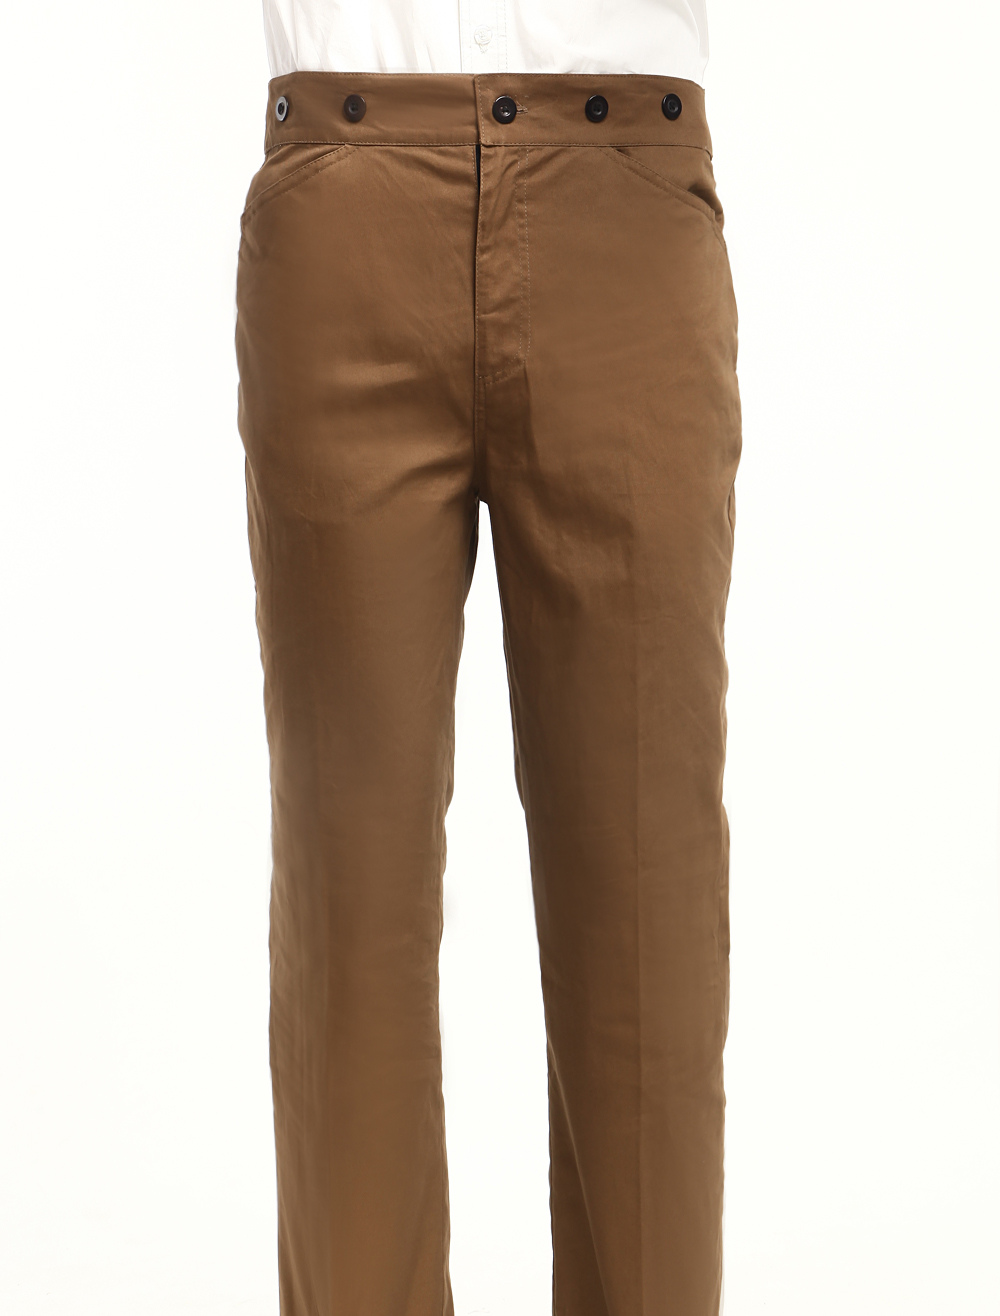 Wonderful Dark Brown Cotton Mens Steampunk Trousers $49.99 AT vintagedancer.com